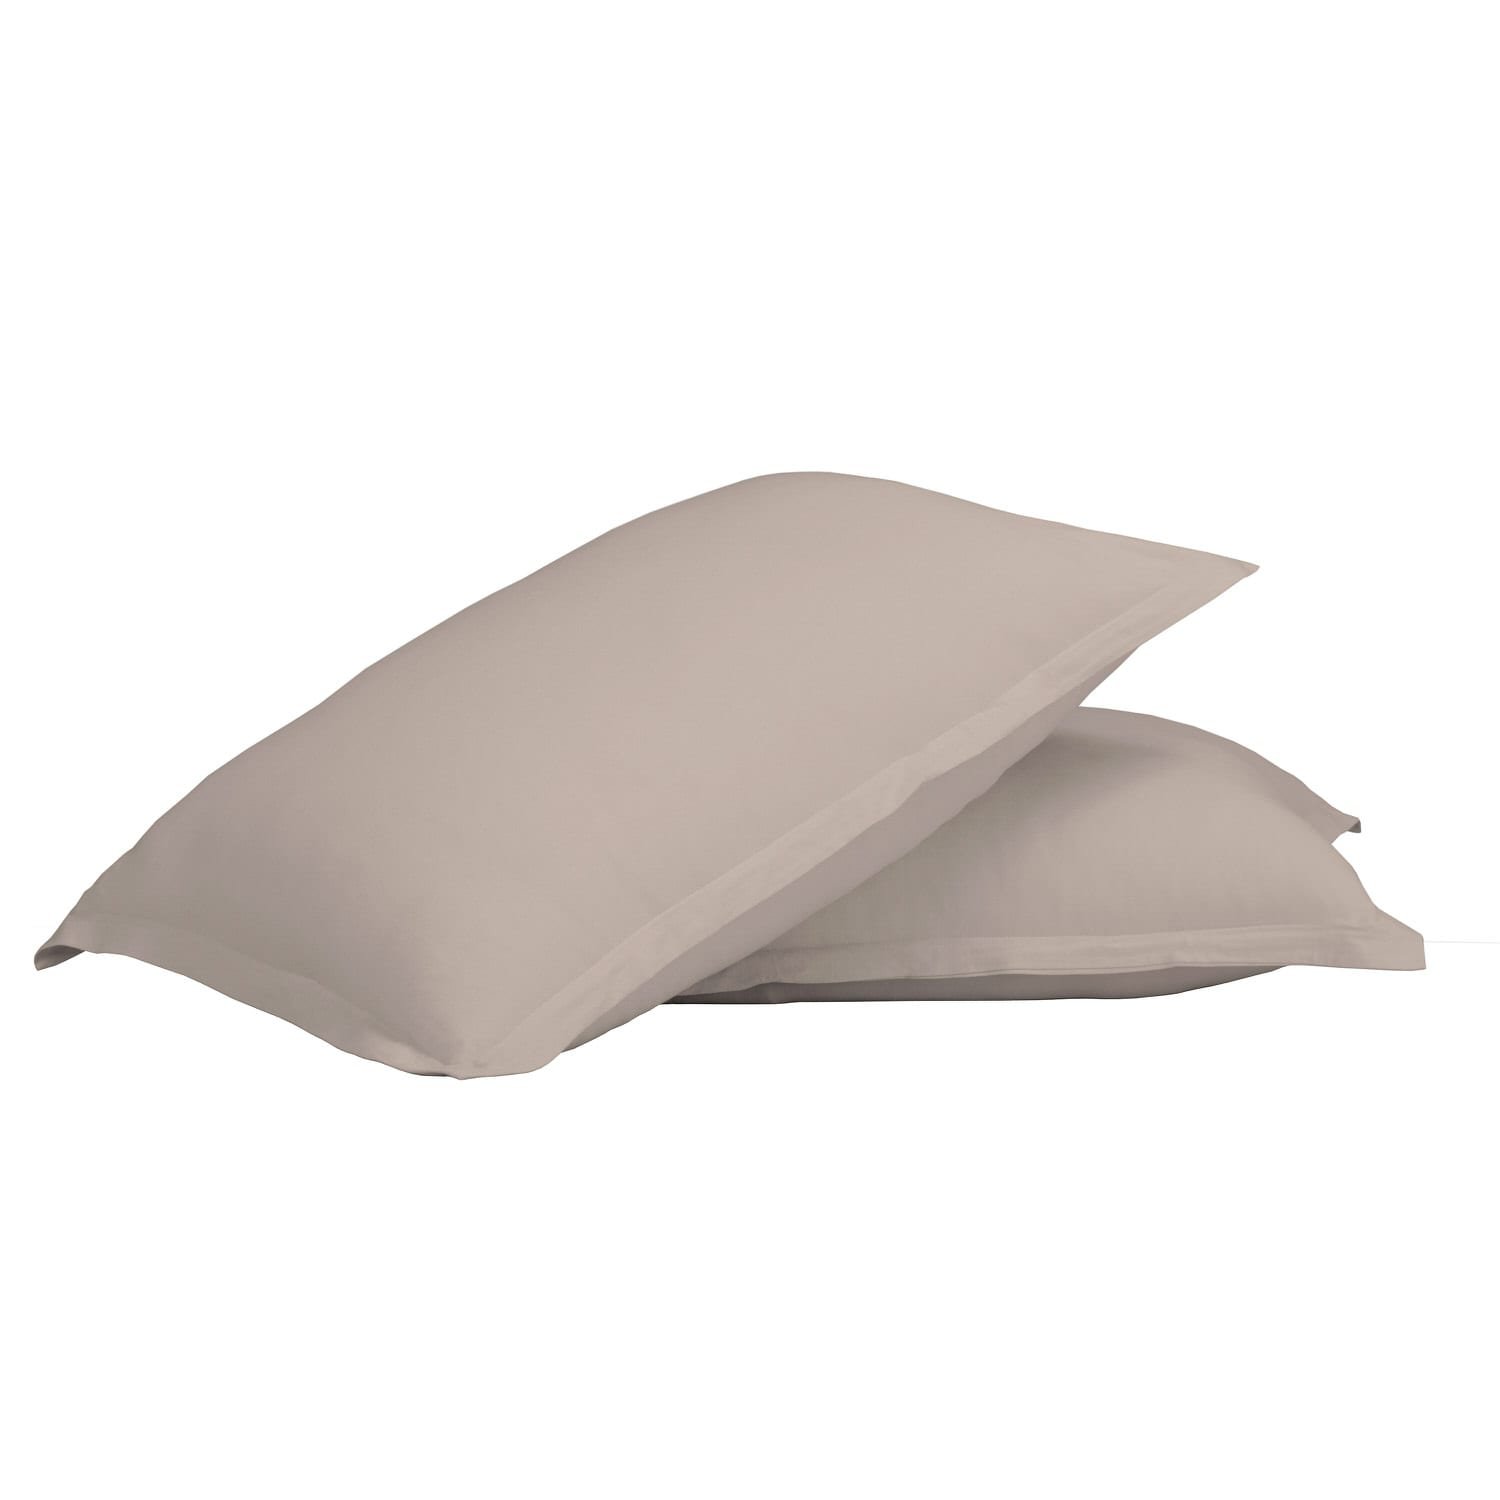 100% Premium Combed Cotton Jersey Beige Fitted Pillow Case Set With Aloe Vera Treatment